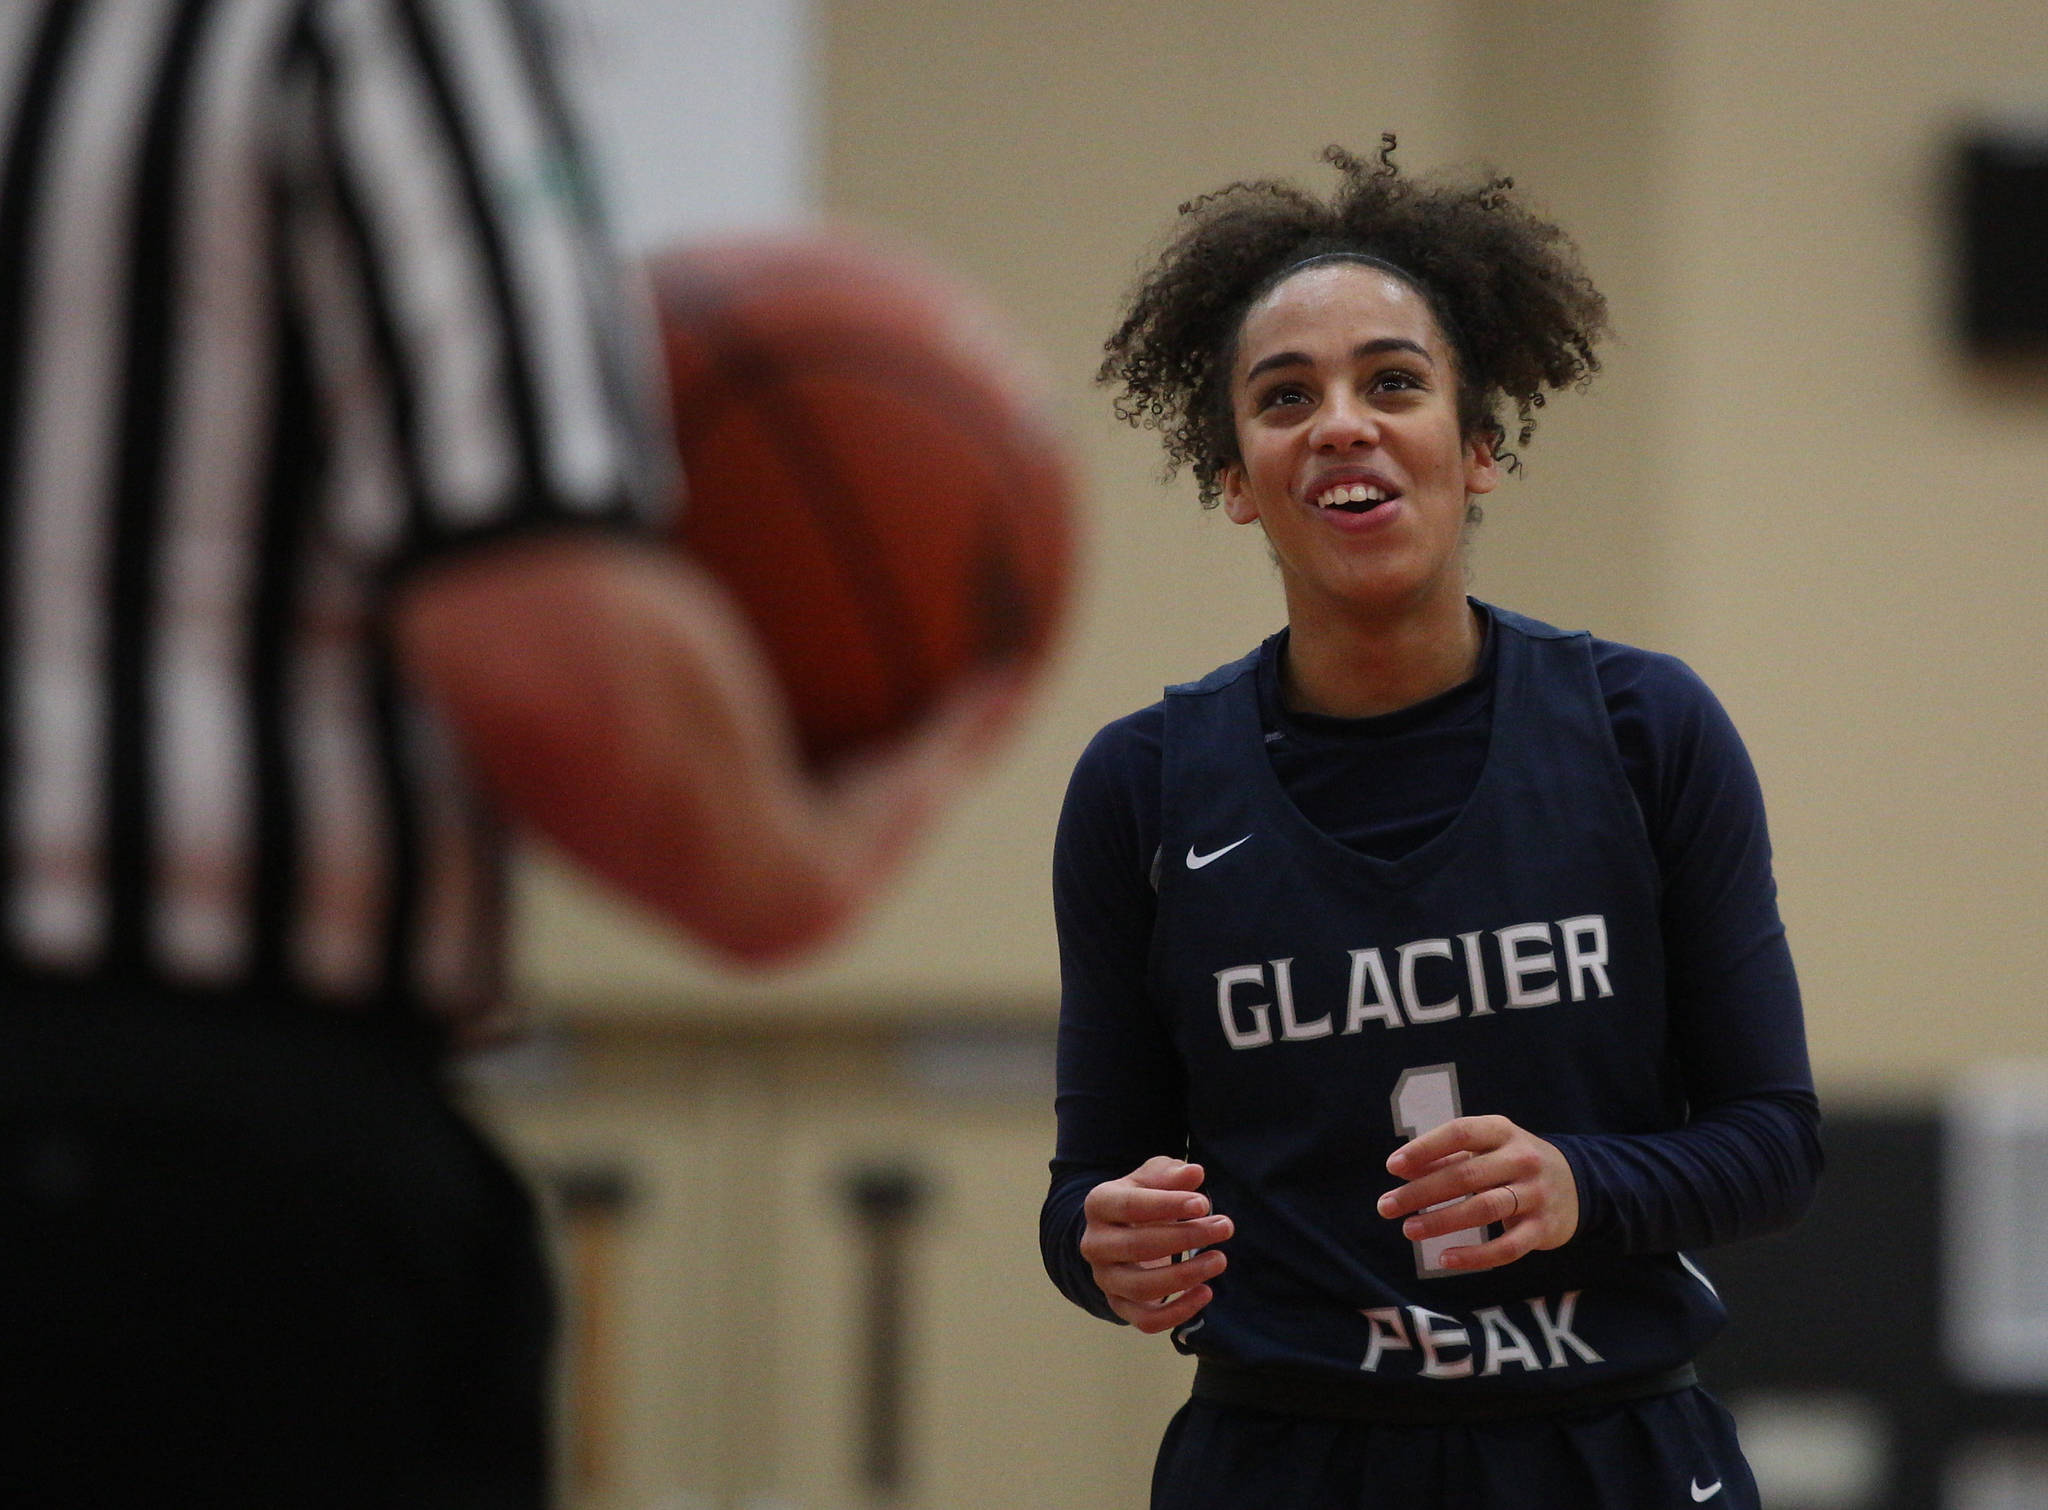 Glacier Peak's Aaliyah Collins laughs while standing at the free-throw line during a game against Snohomish on Dec. 9, 2019 at Snohomish High School. (Andy Bronson / The Herald)